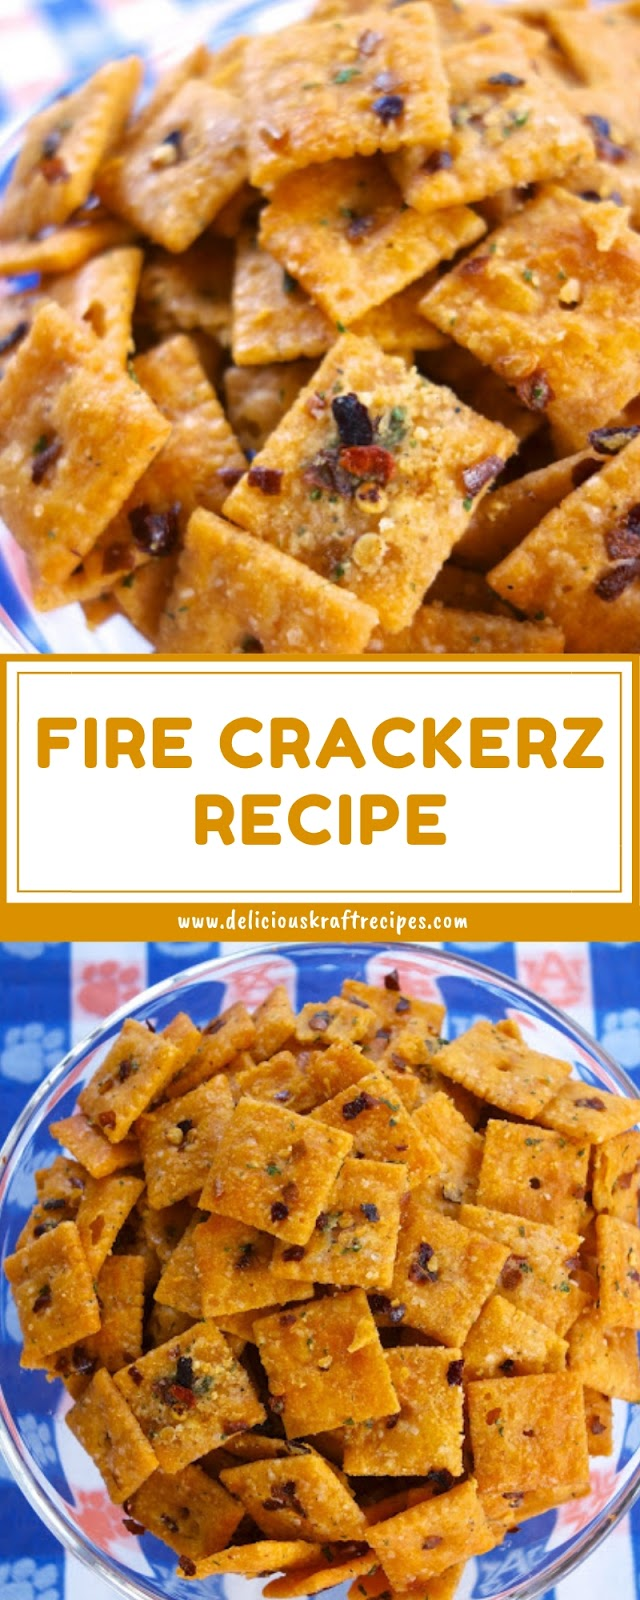 FIRE CRACKERZ RECIPE